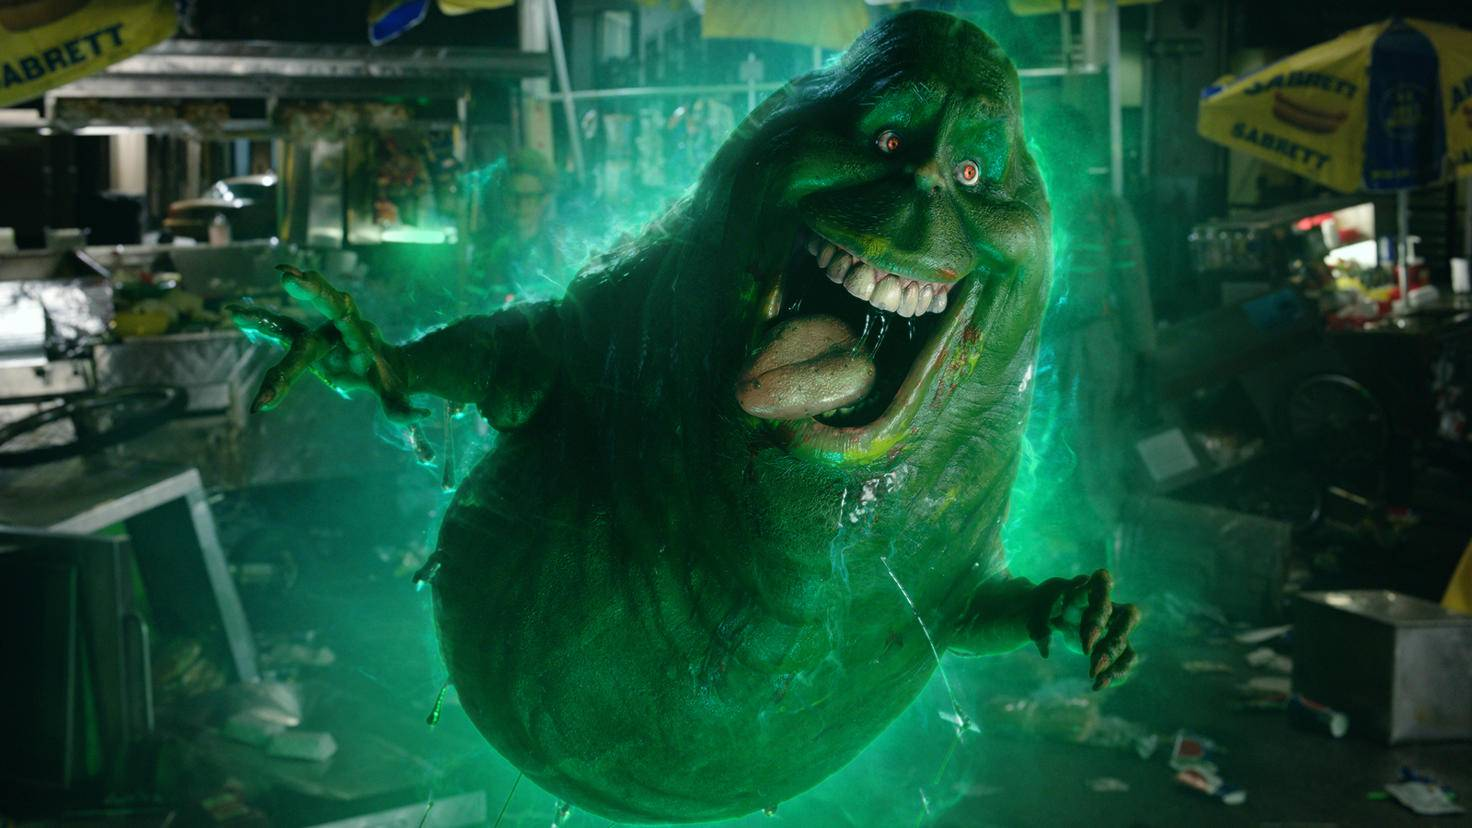 Ghostbusters 2016-Slimer-Sony Pictures Home Entertainment